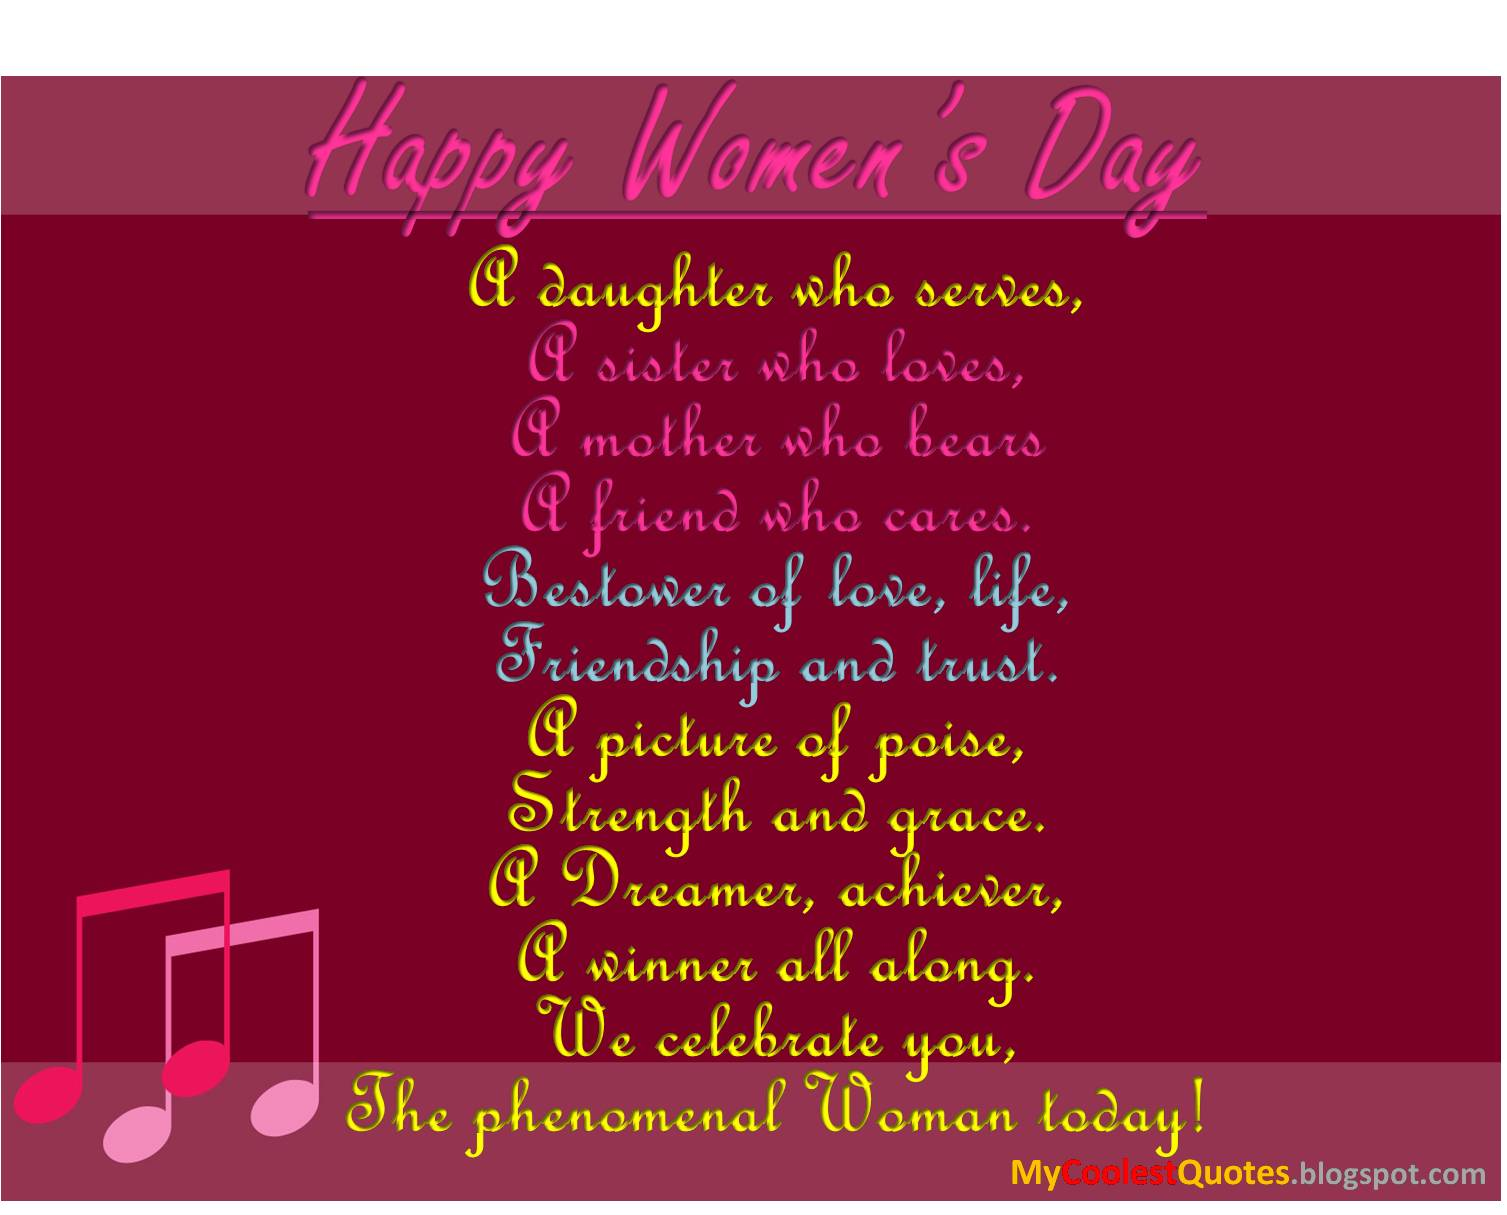 Phenomenal Woman Quotes Custom My Coolest Quotes Happy Women's Day  The Phenomenal Woman Of Today